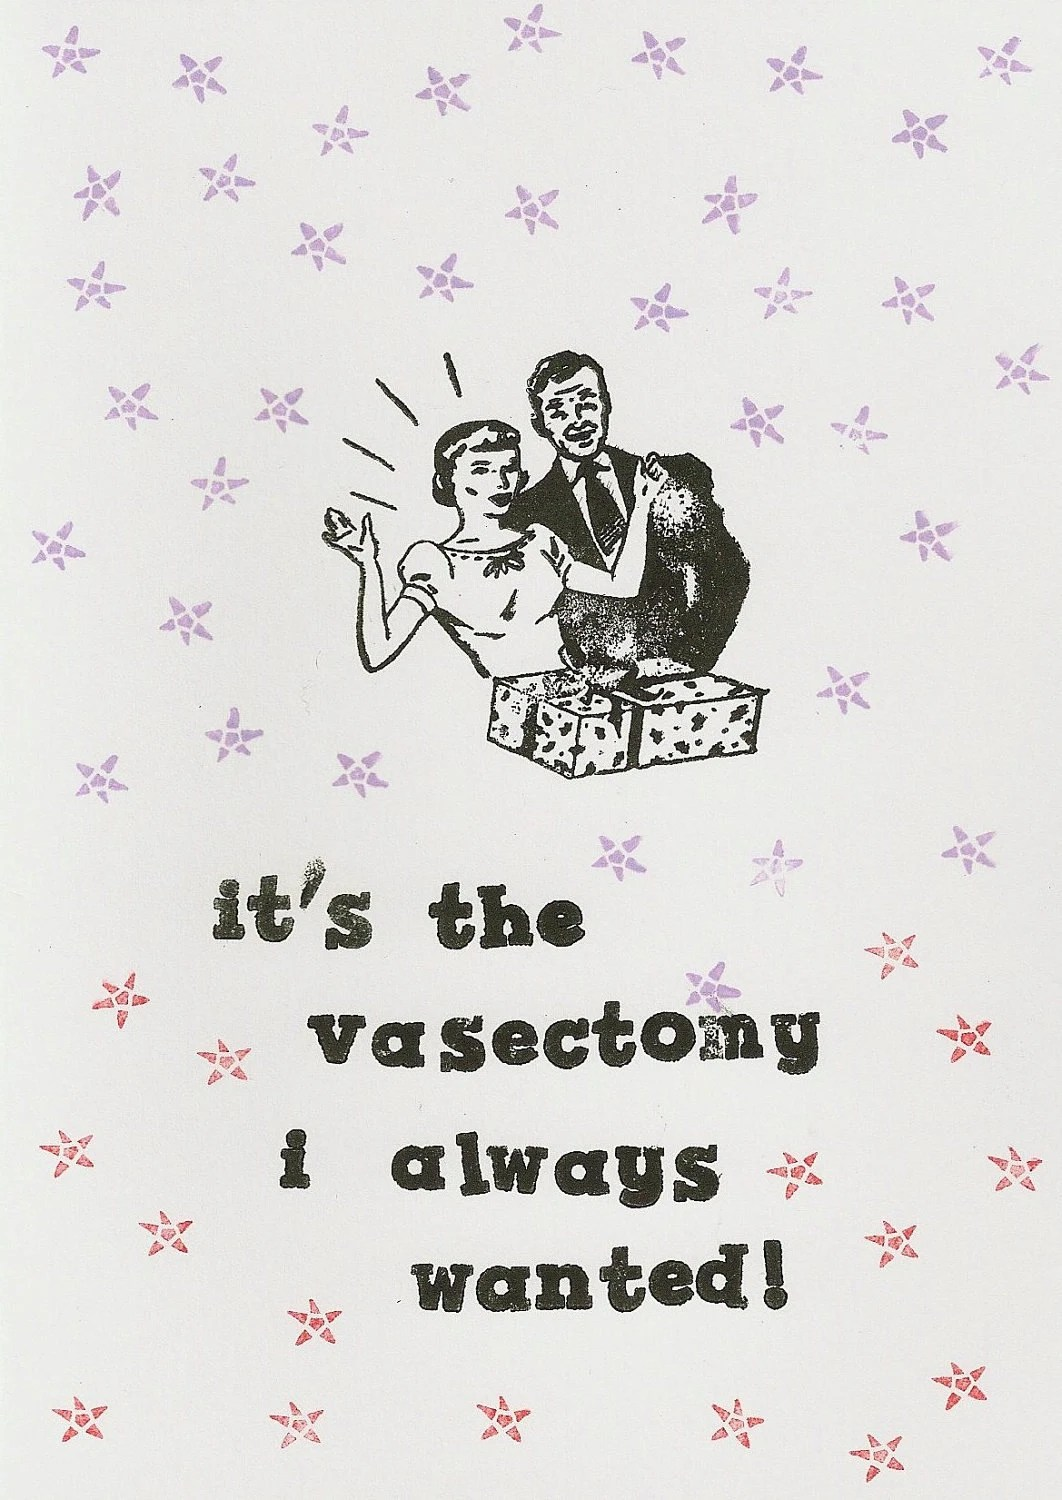 Funny vasectomy handstamped greeting card